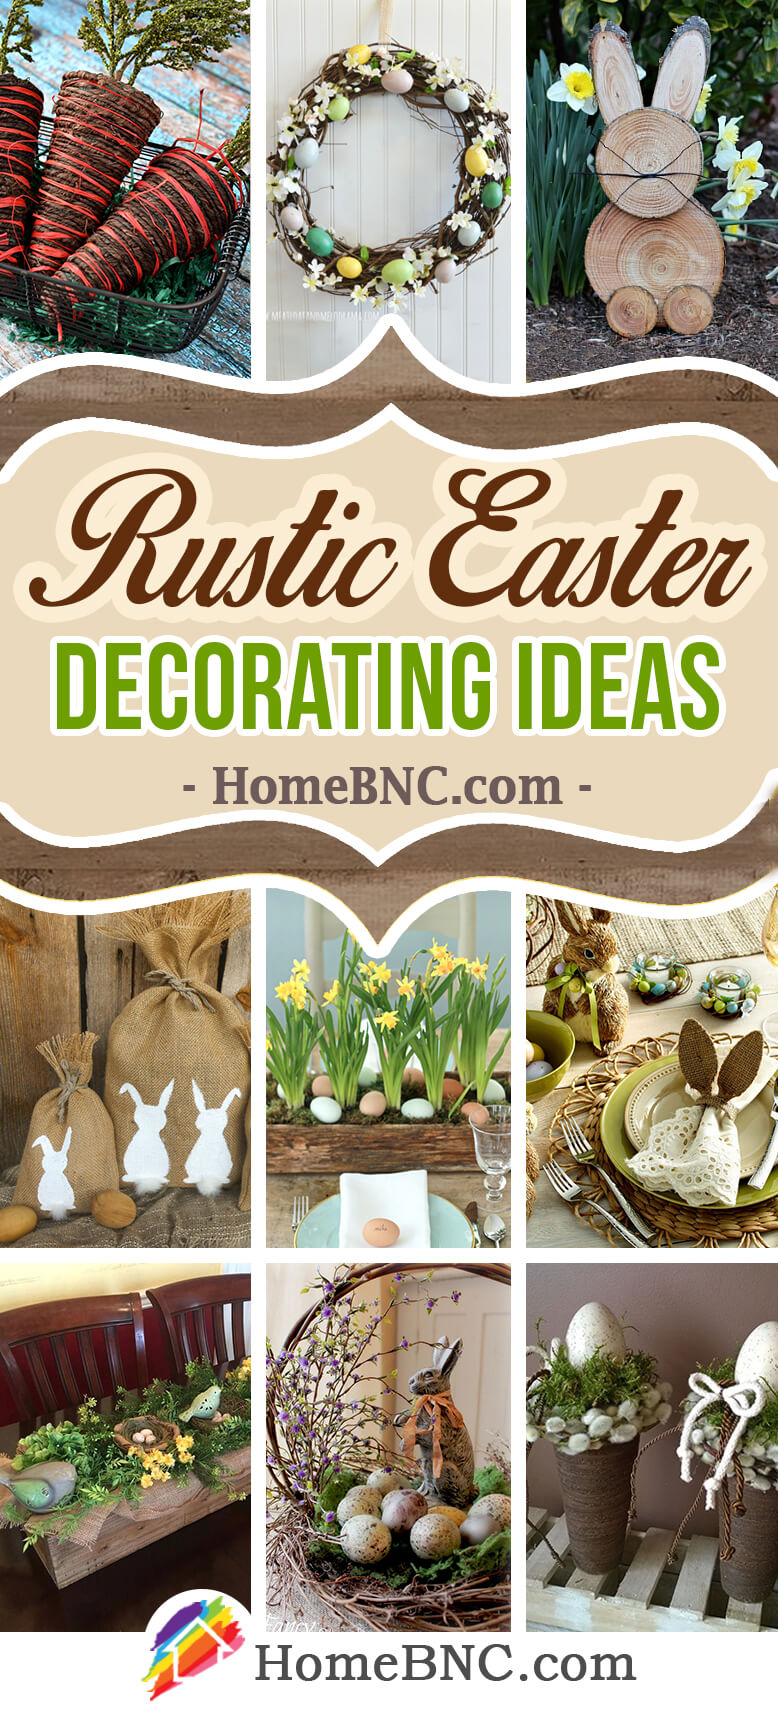 34 Best Rustic Easter Decoration Ideas and Designs for 2019